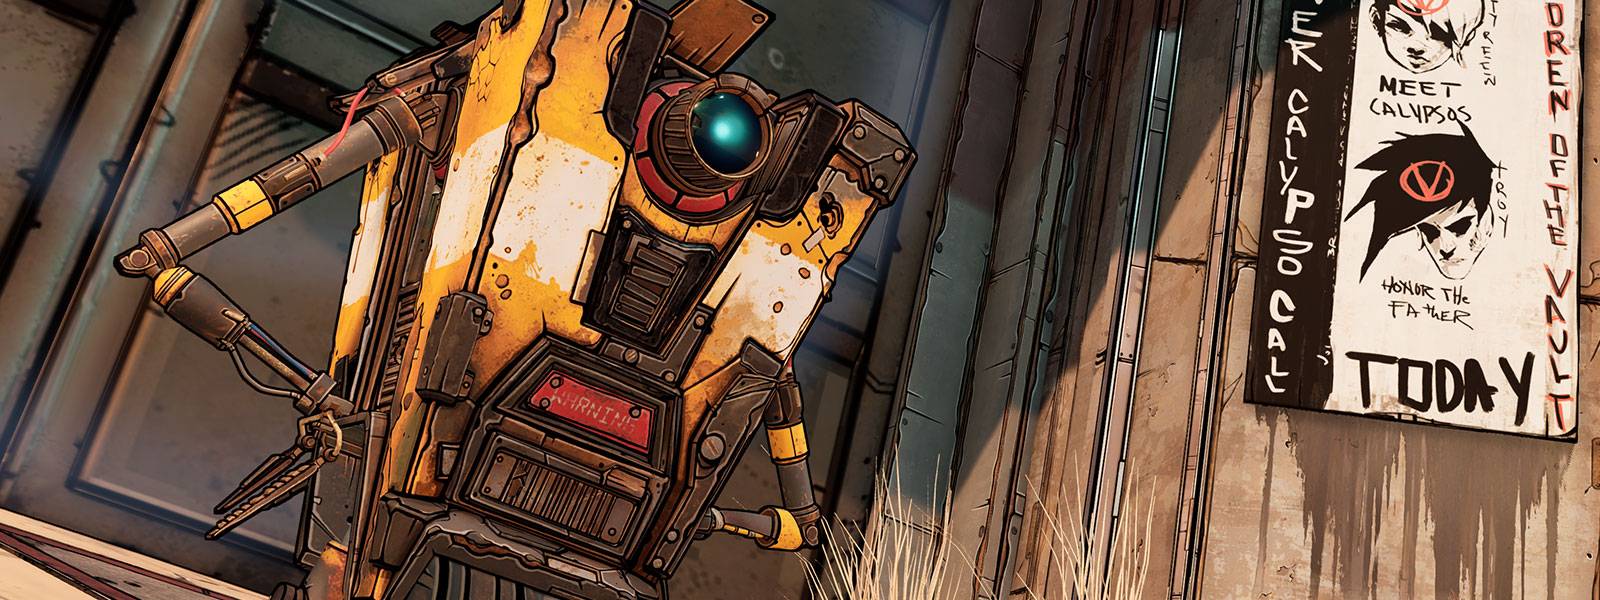 Claptrap stands in front of a large door next to a sign on a wall